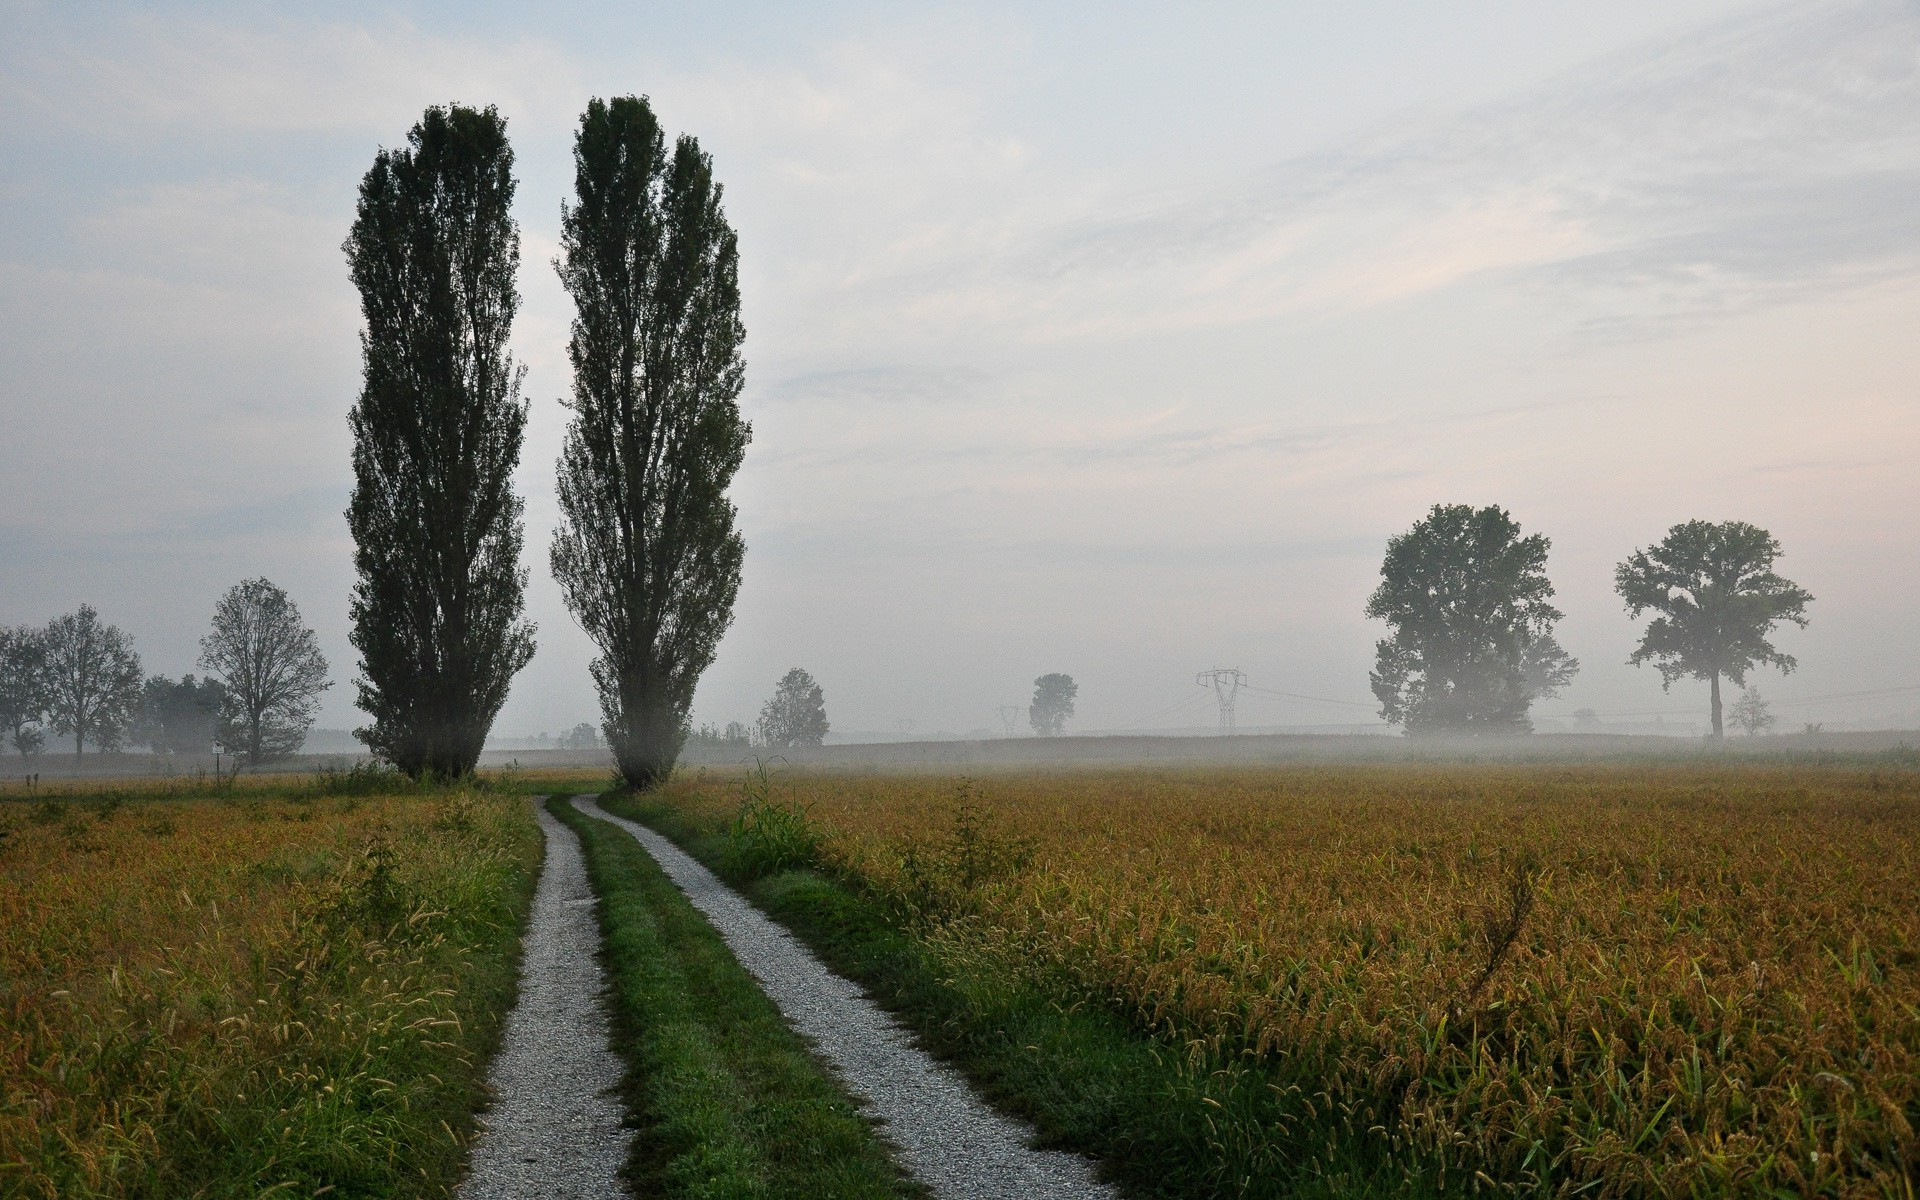 road landscape fog agriculture countryside tree dawn cropland field rural outdoors nature farm grass sky mist daylight fall sunset